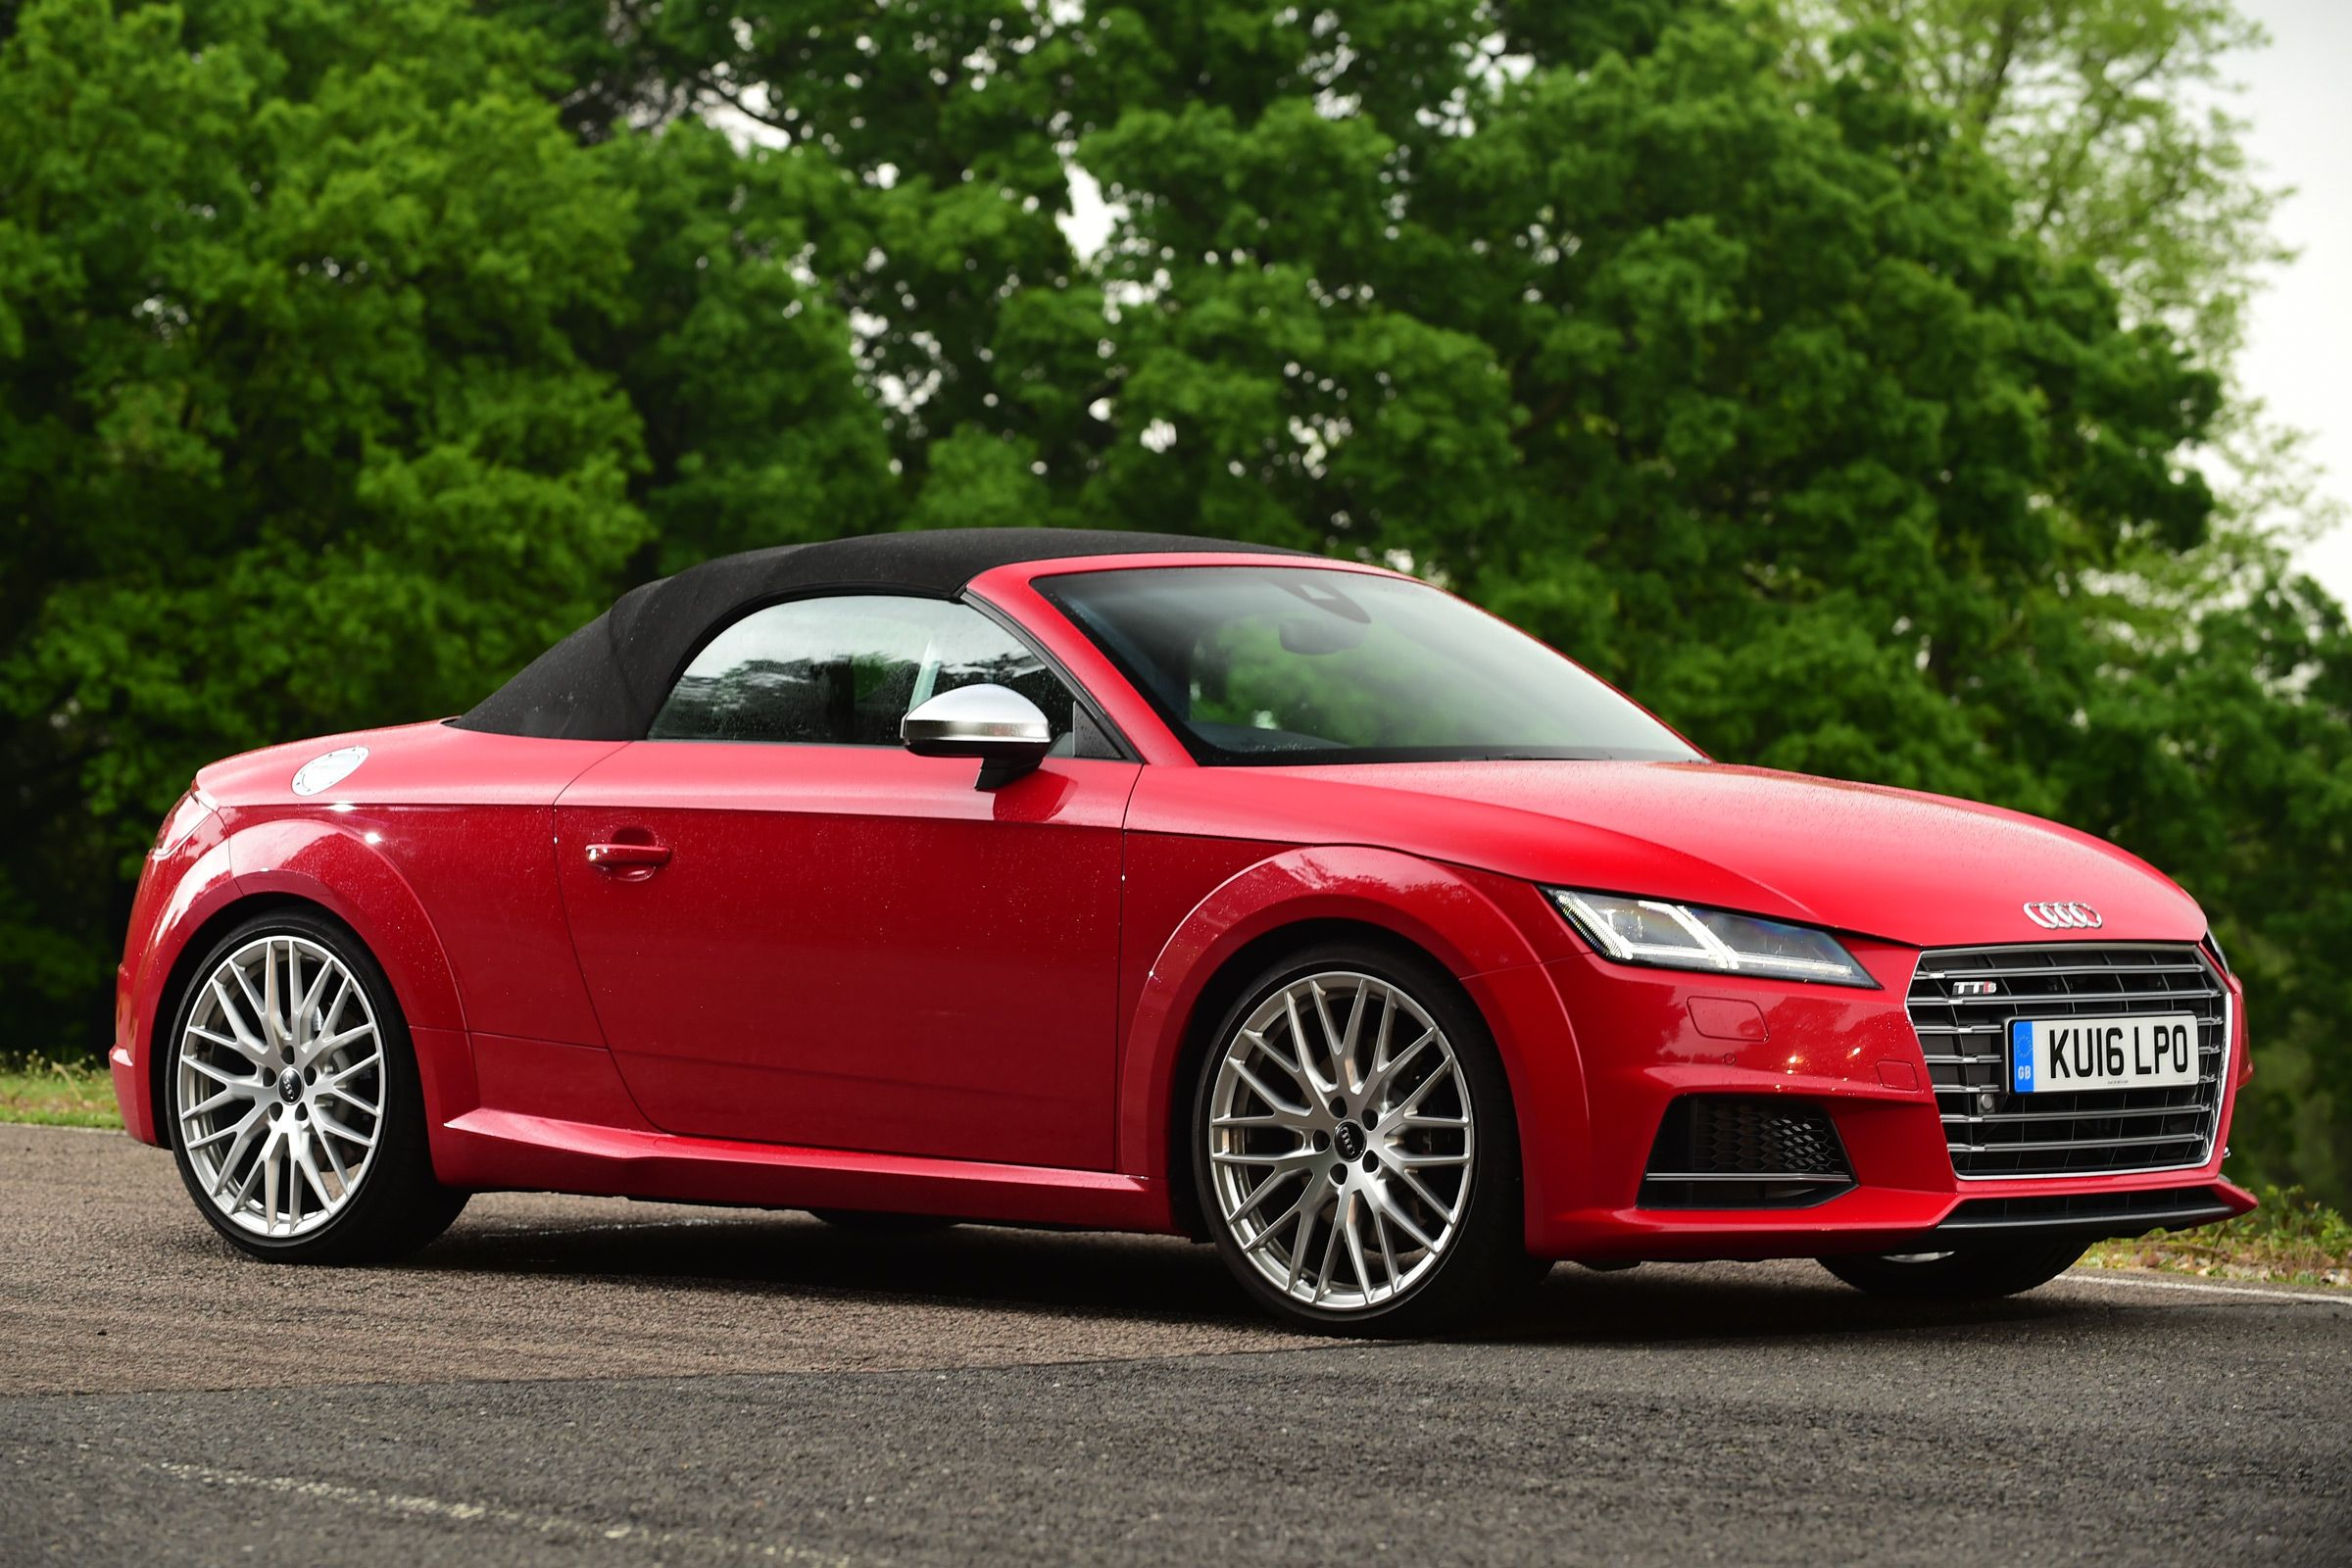 Audi TTS Roadster Cars I Like And Some Motorcycles Pinterest - Audi tts roadster